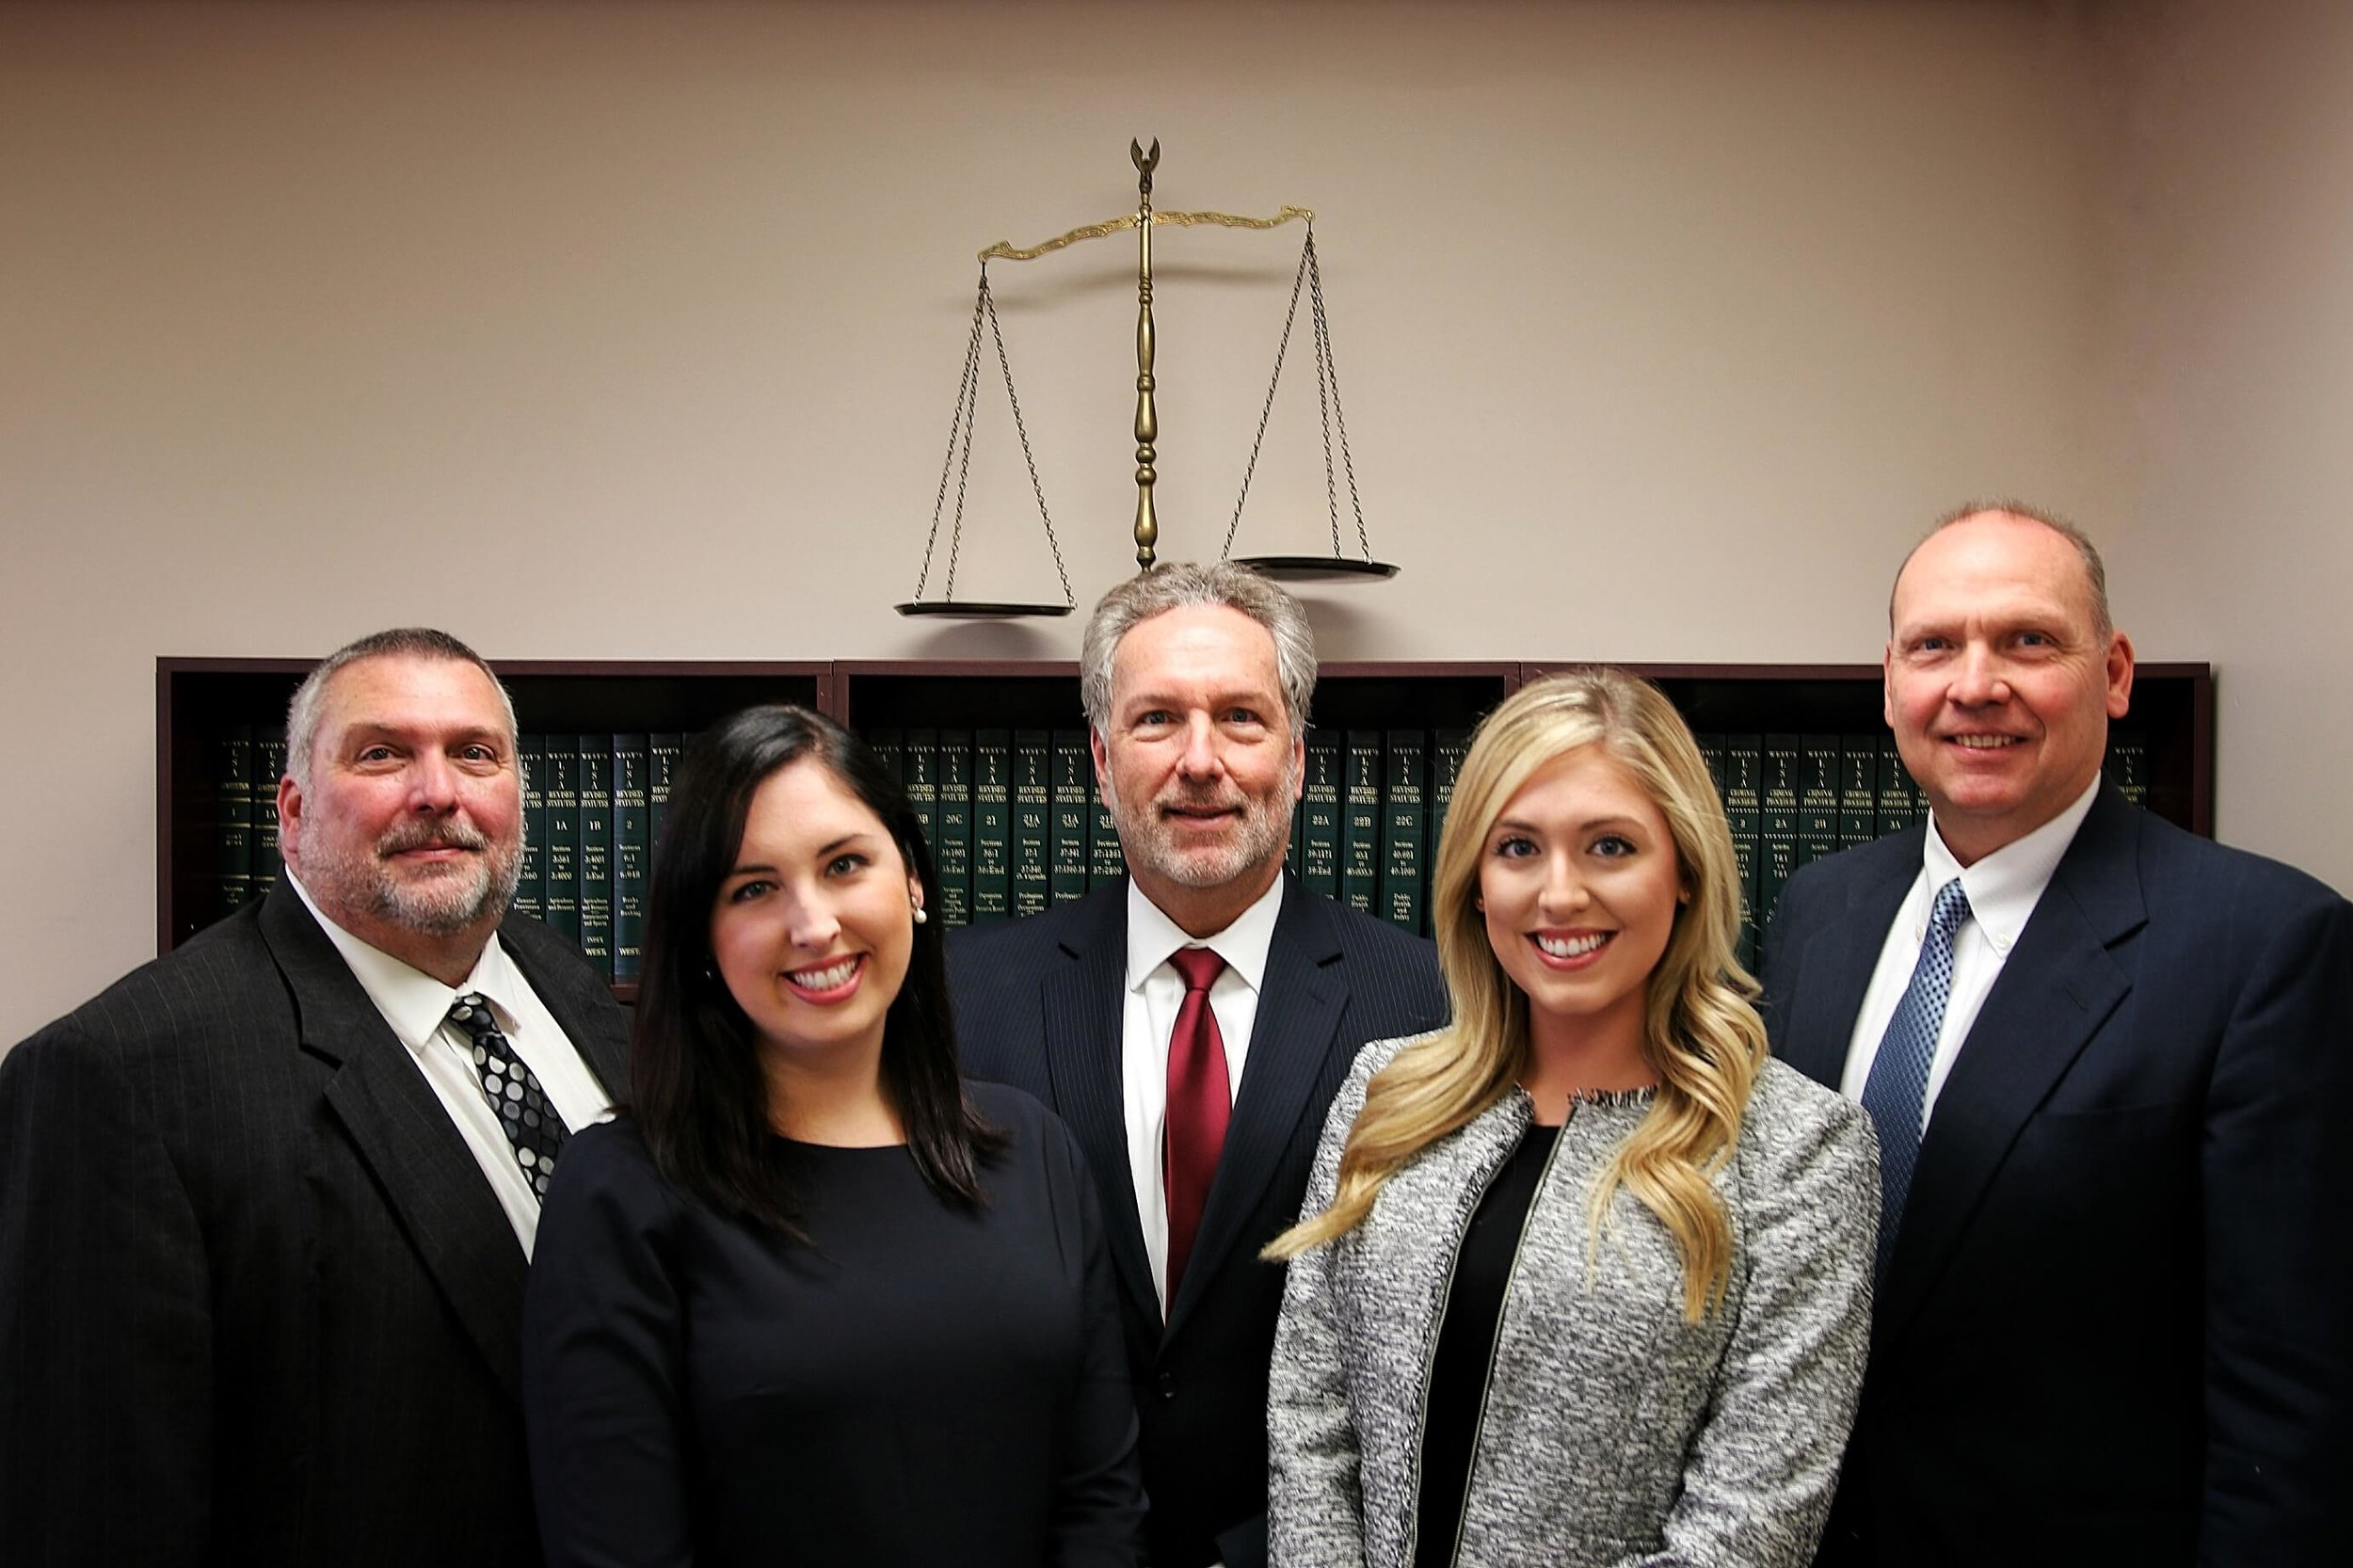 About - Southern Legal Clinics is a Family Owned and Operated Law Firm with 7 Locations in the Greater New Orleans Area and throughout Louisiana. Contact Us Today, and Your 1st Consultation Will Be Free.Since 1981, Our Law Firm Has Helped People in Louisiana with Estate Planning Law, Divorce Law, Bankruptcy Law, and Personal Injury Law. The Most Common Legal Needs That We Help People With are Probate, Succession, Wills, Powers of Attorney, Uncontested Divorce, Chapter 7 Bankruptcy, Chapter 13 Bankruptcy, DWI, DUI, & Personal Injury. Our Family Strives to Treat All of Our Clients as Family.Lawyers You Can Trust.Lawyers You Can Afford.Our Law Firm's Primary Services:Estate PlanningProbateSuccessionBankruptcyPersonal InjuryDivorceFamily LawDUI and DWI